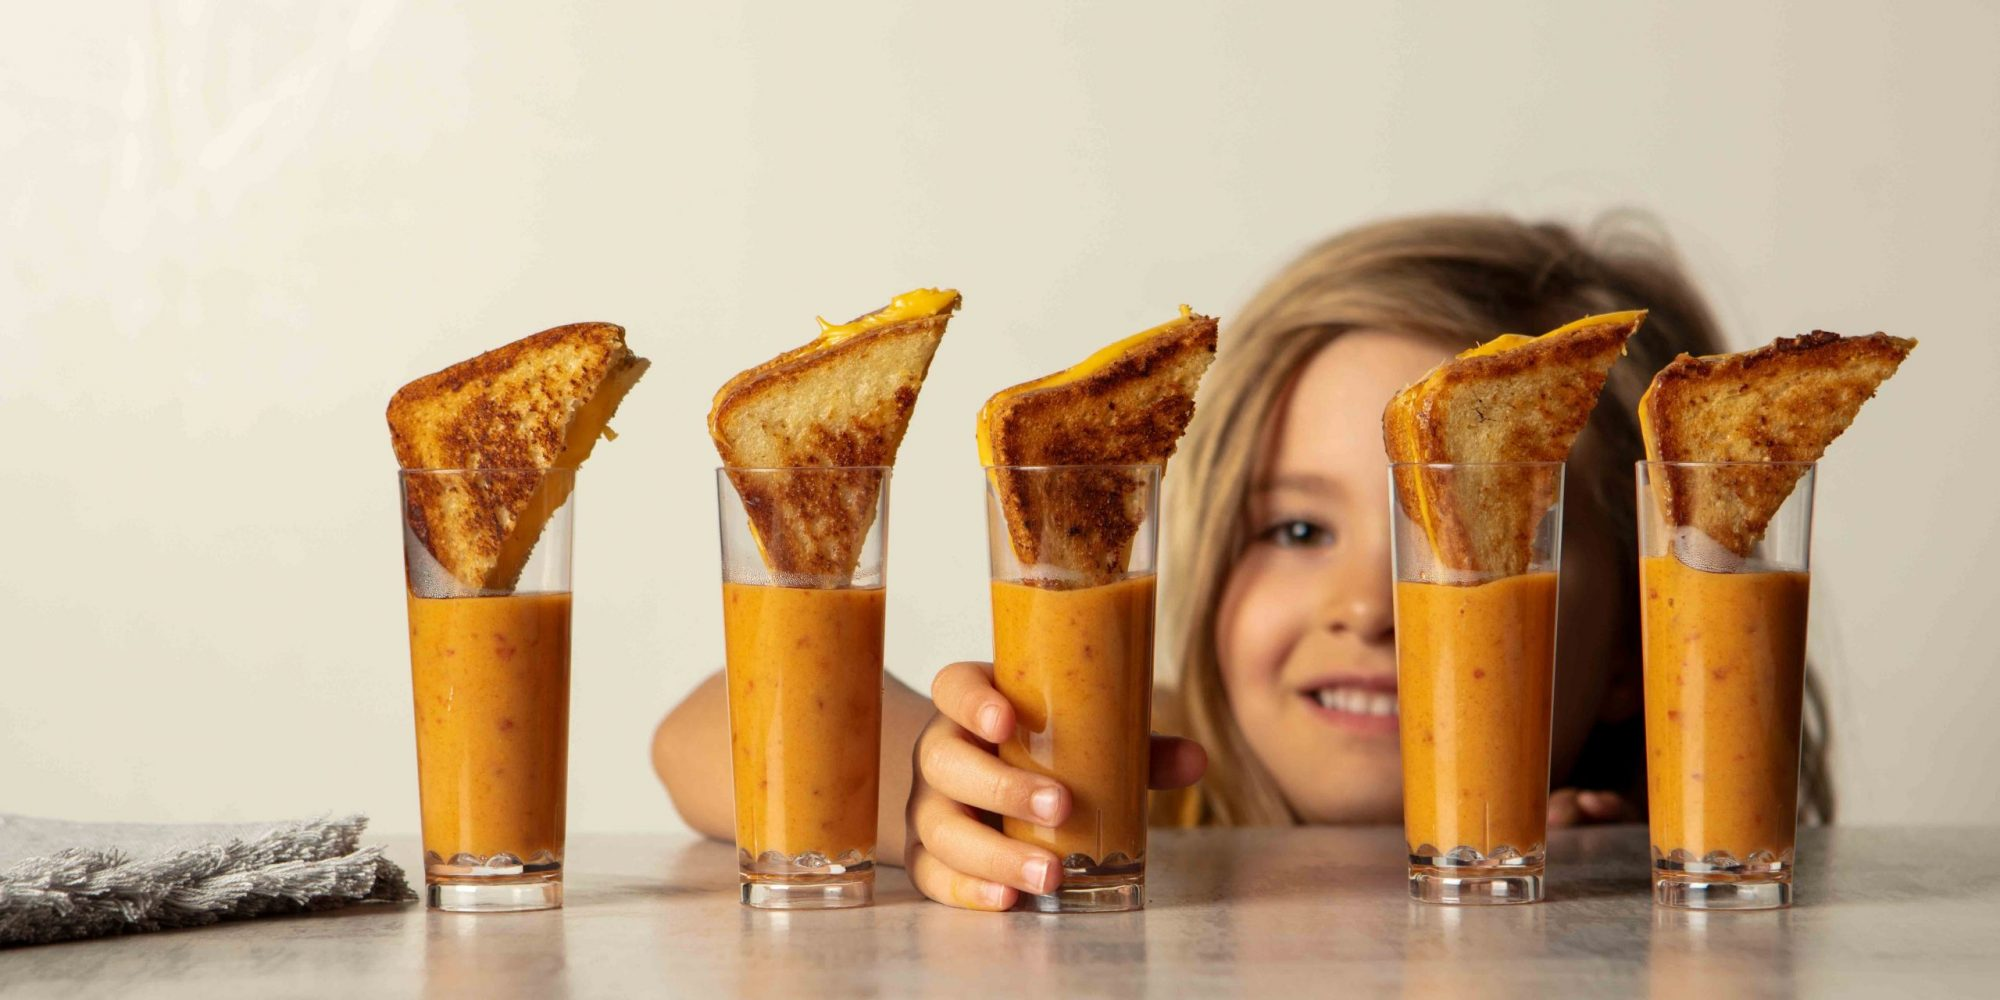 Grilled cheese and tomato soup shooters